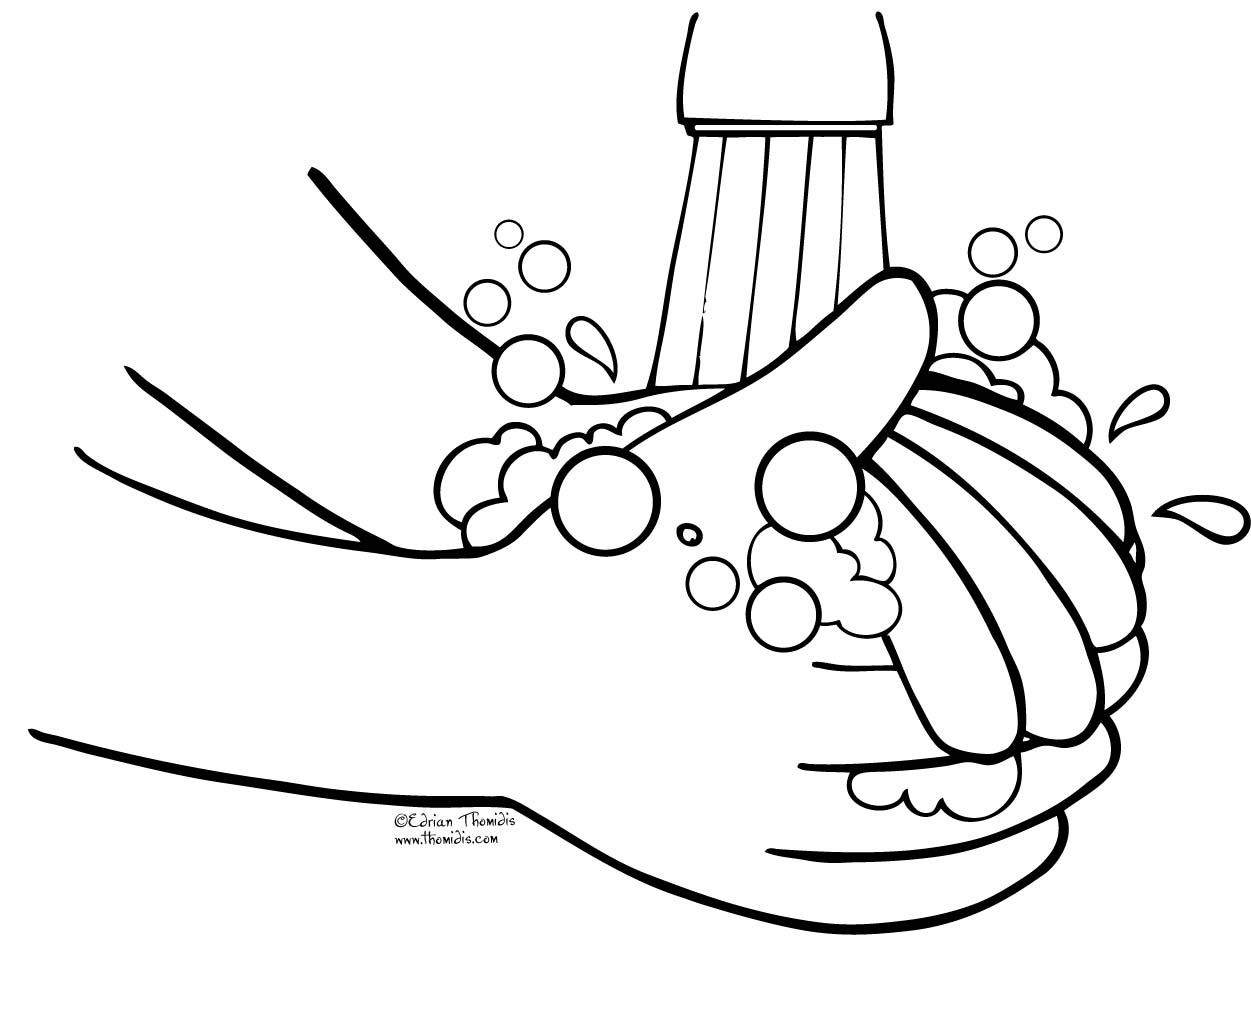 Printable coloring pages healthy habits - Coloring Pages